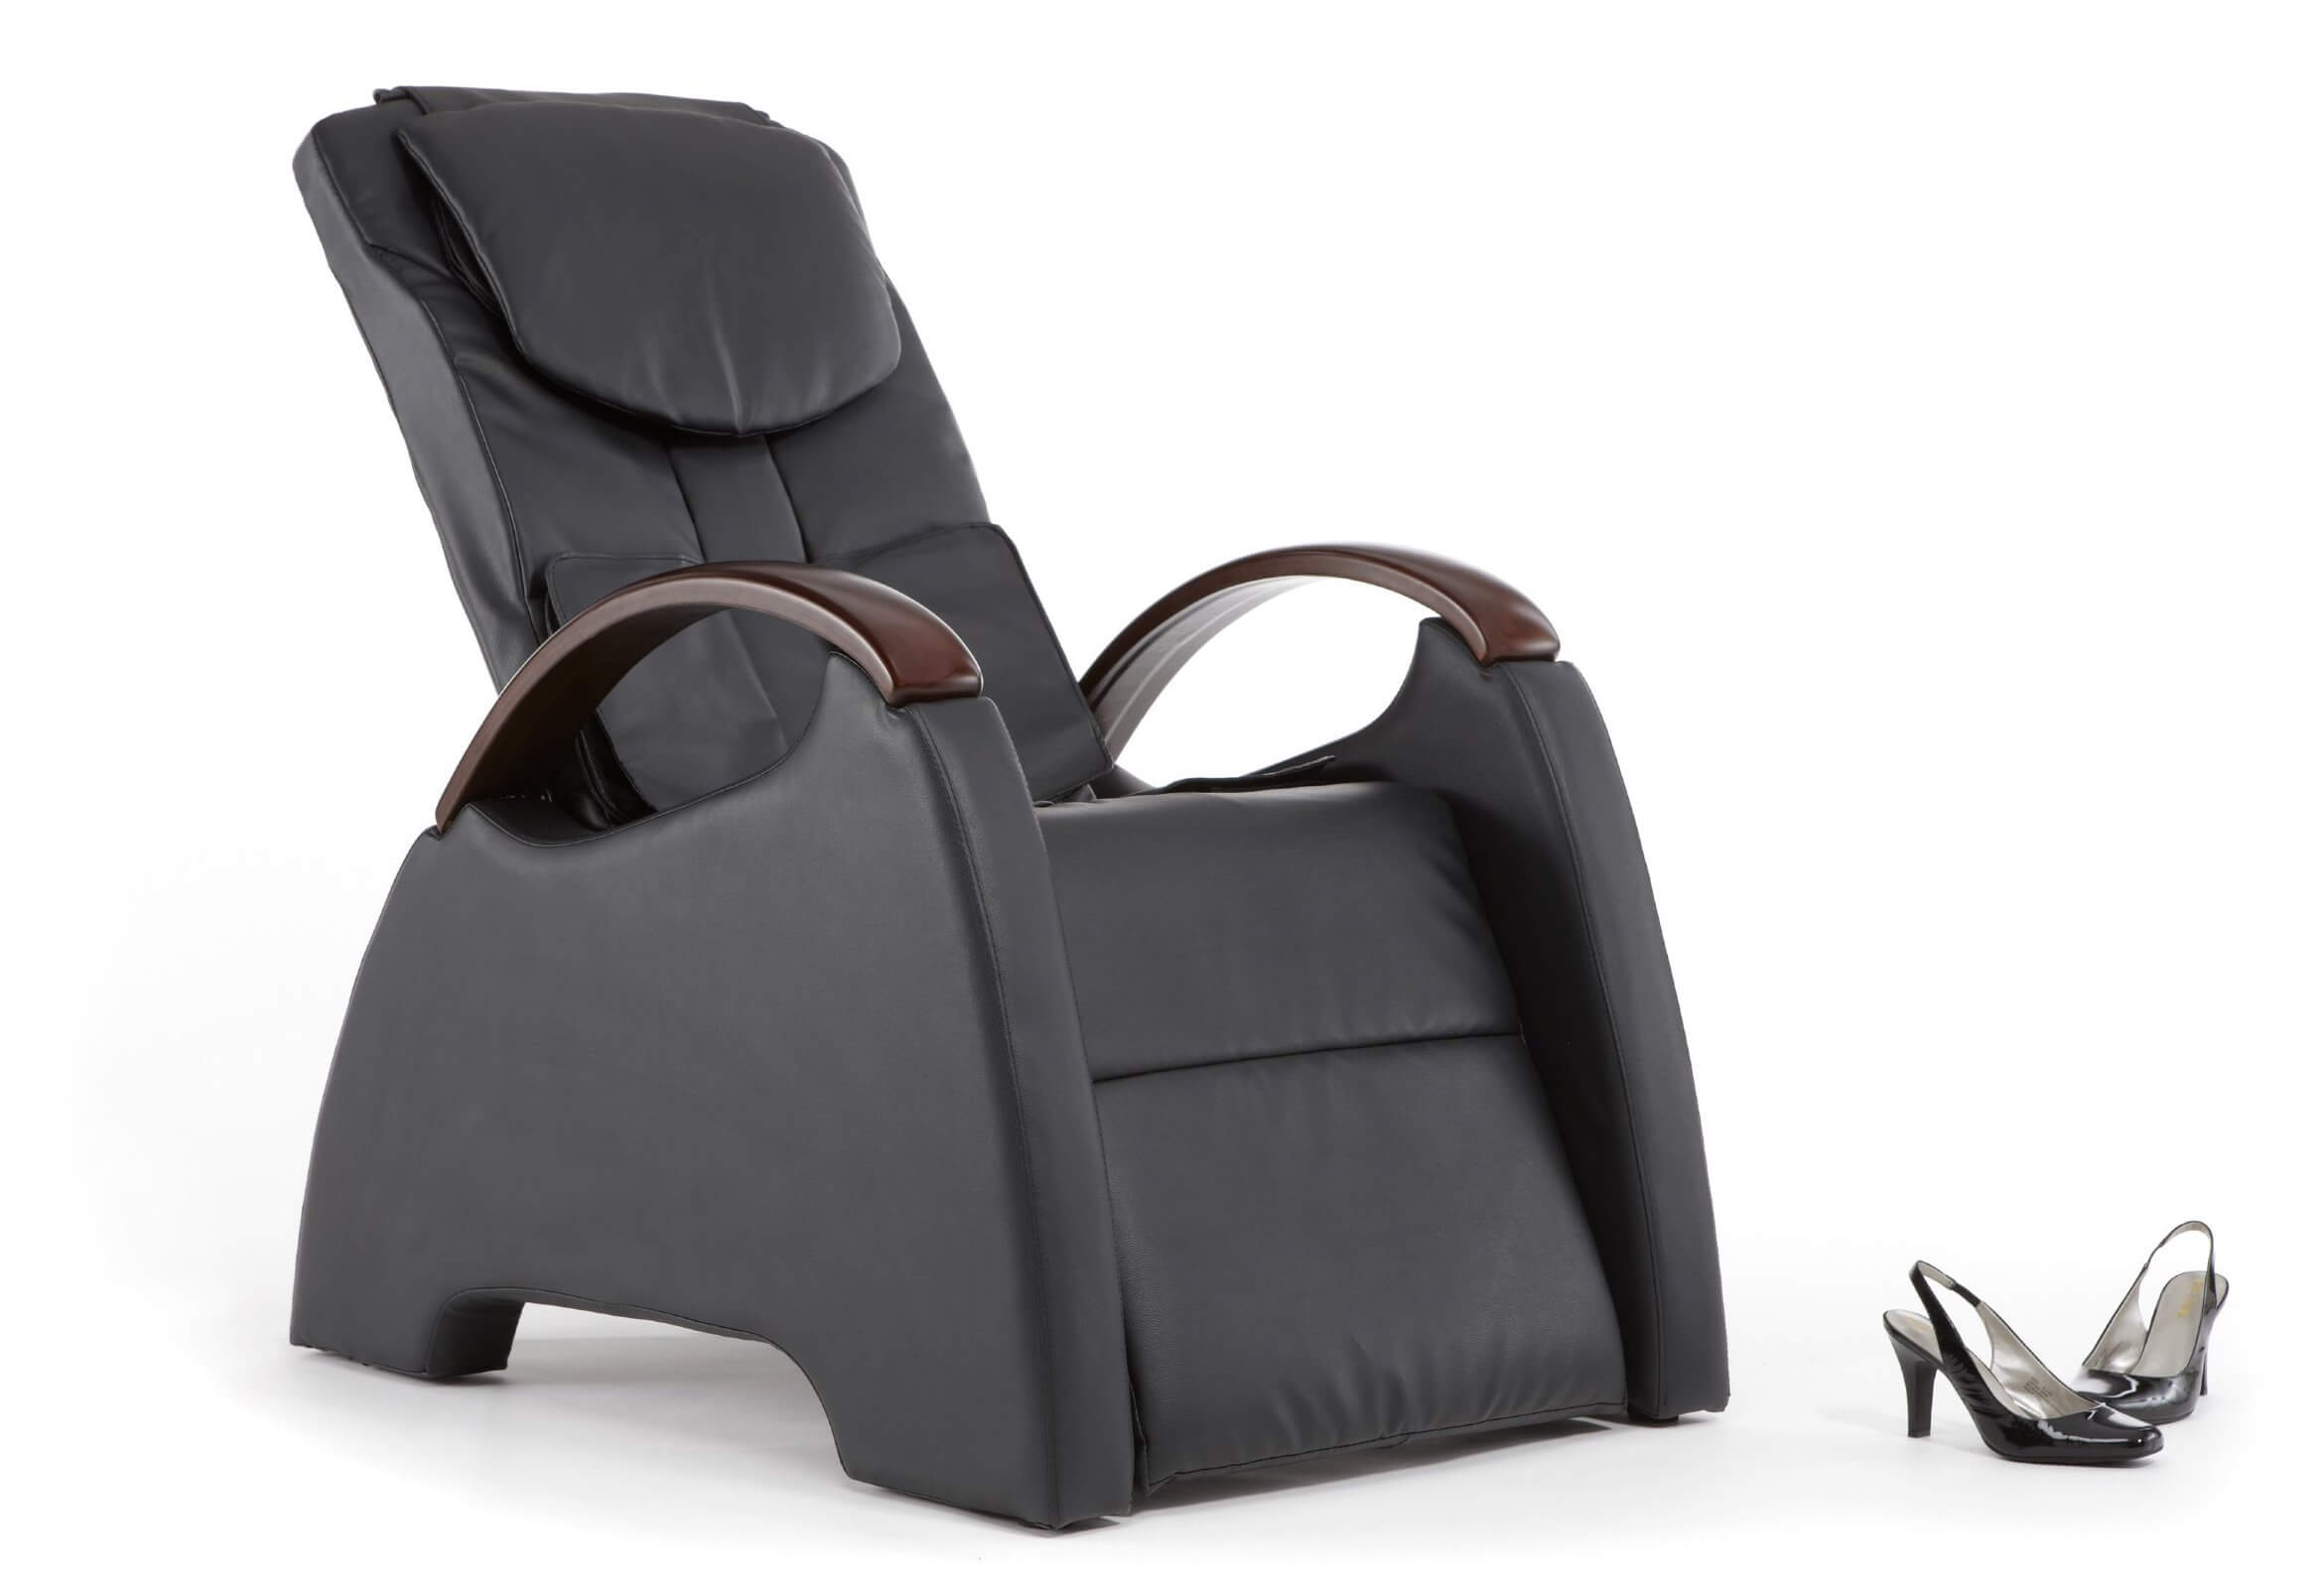 One of the more innovative functions that have been crafted into the recliner design is the ability to massage. This massage chair boast thoroughly modern design and the ability to lay completely horizontal.